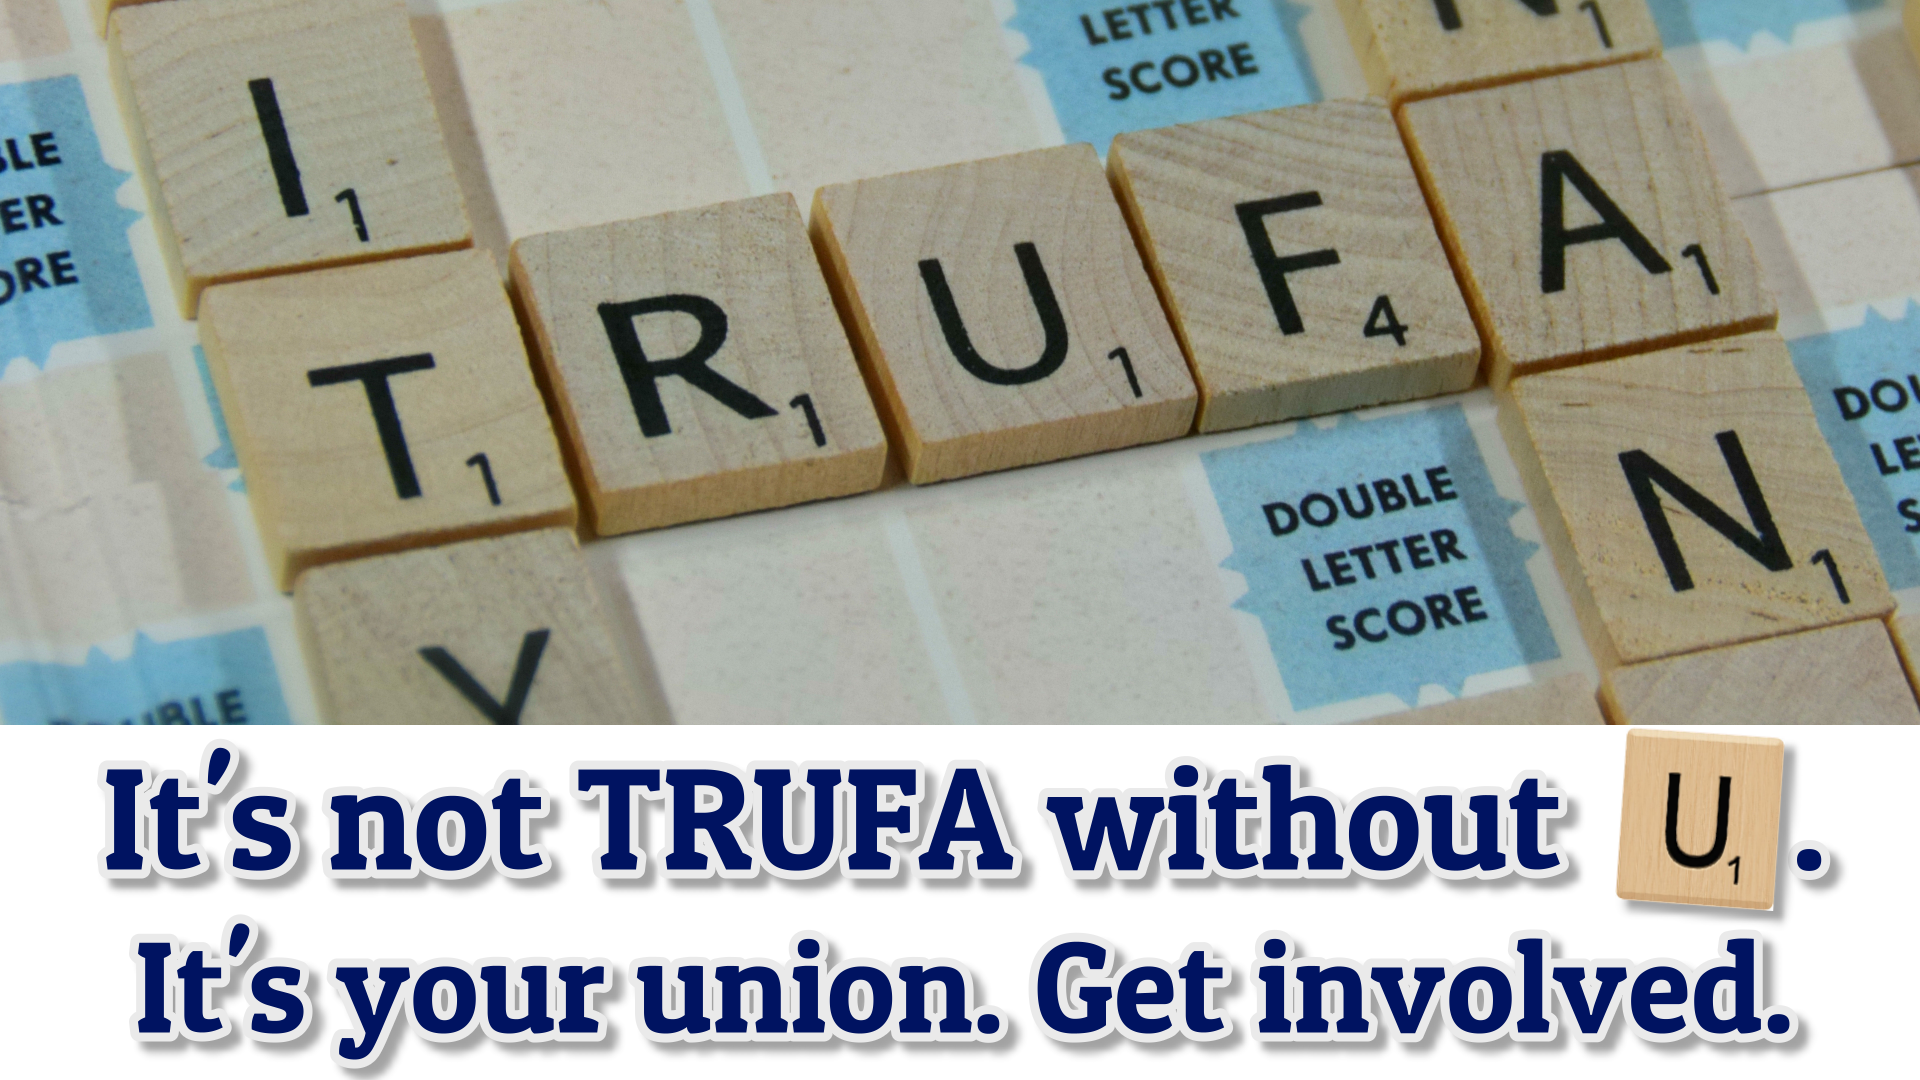 not-trufa-without-u-banner